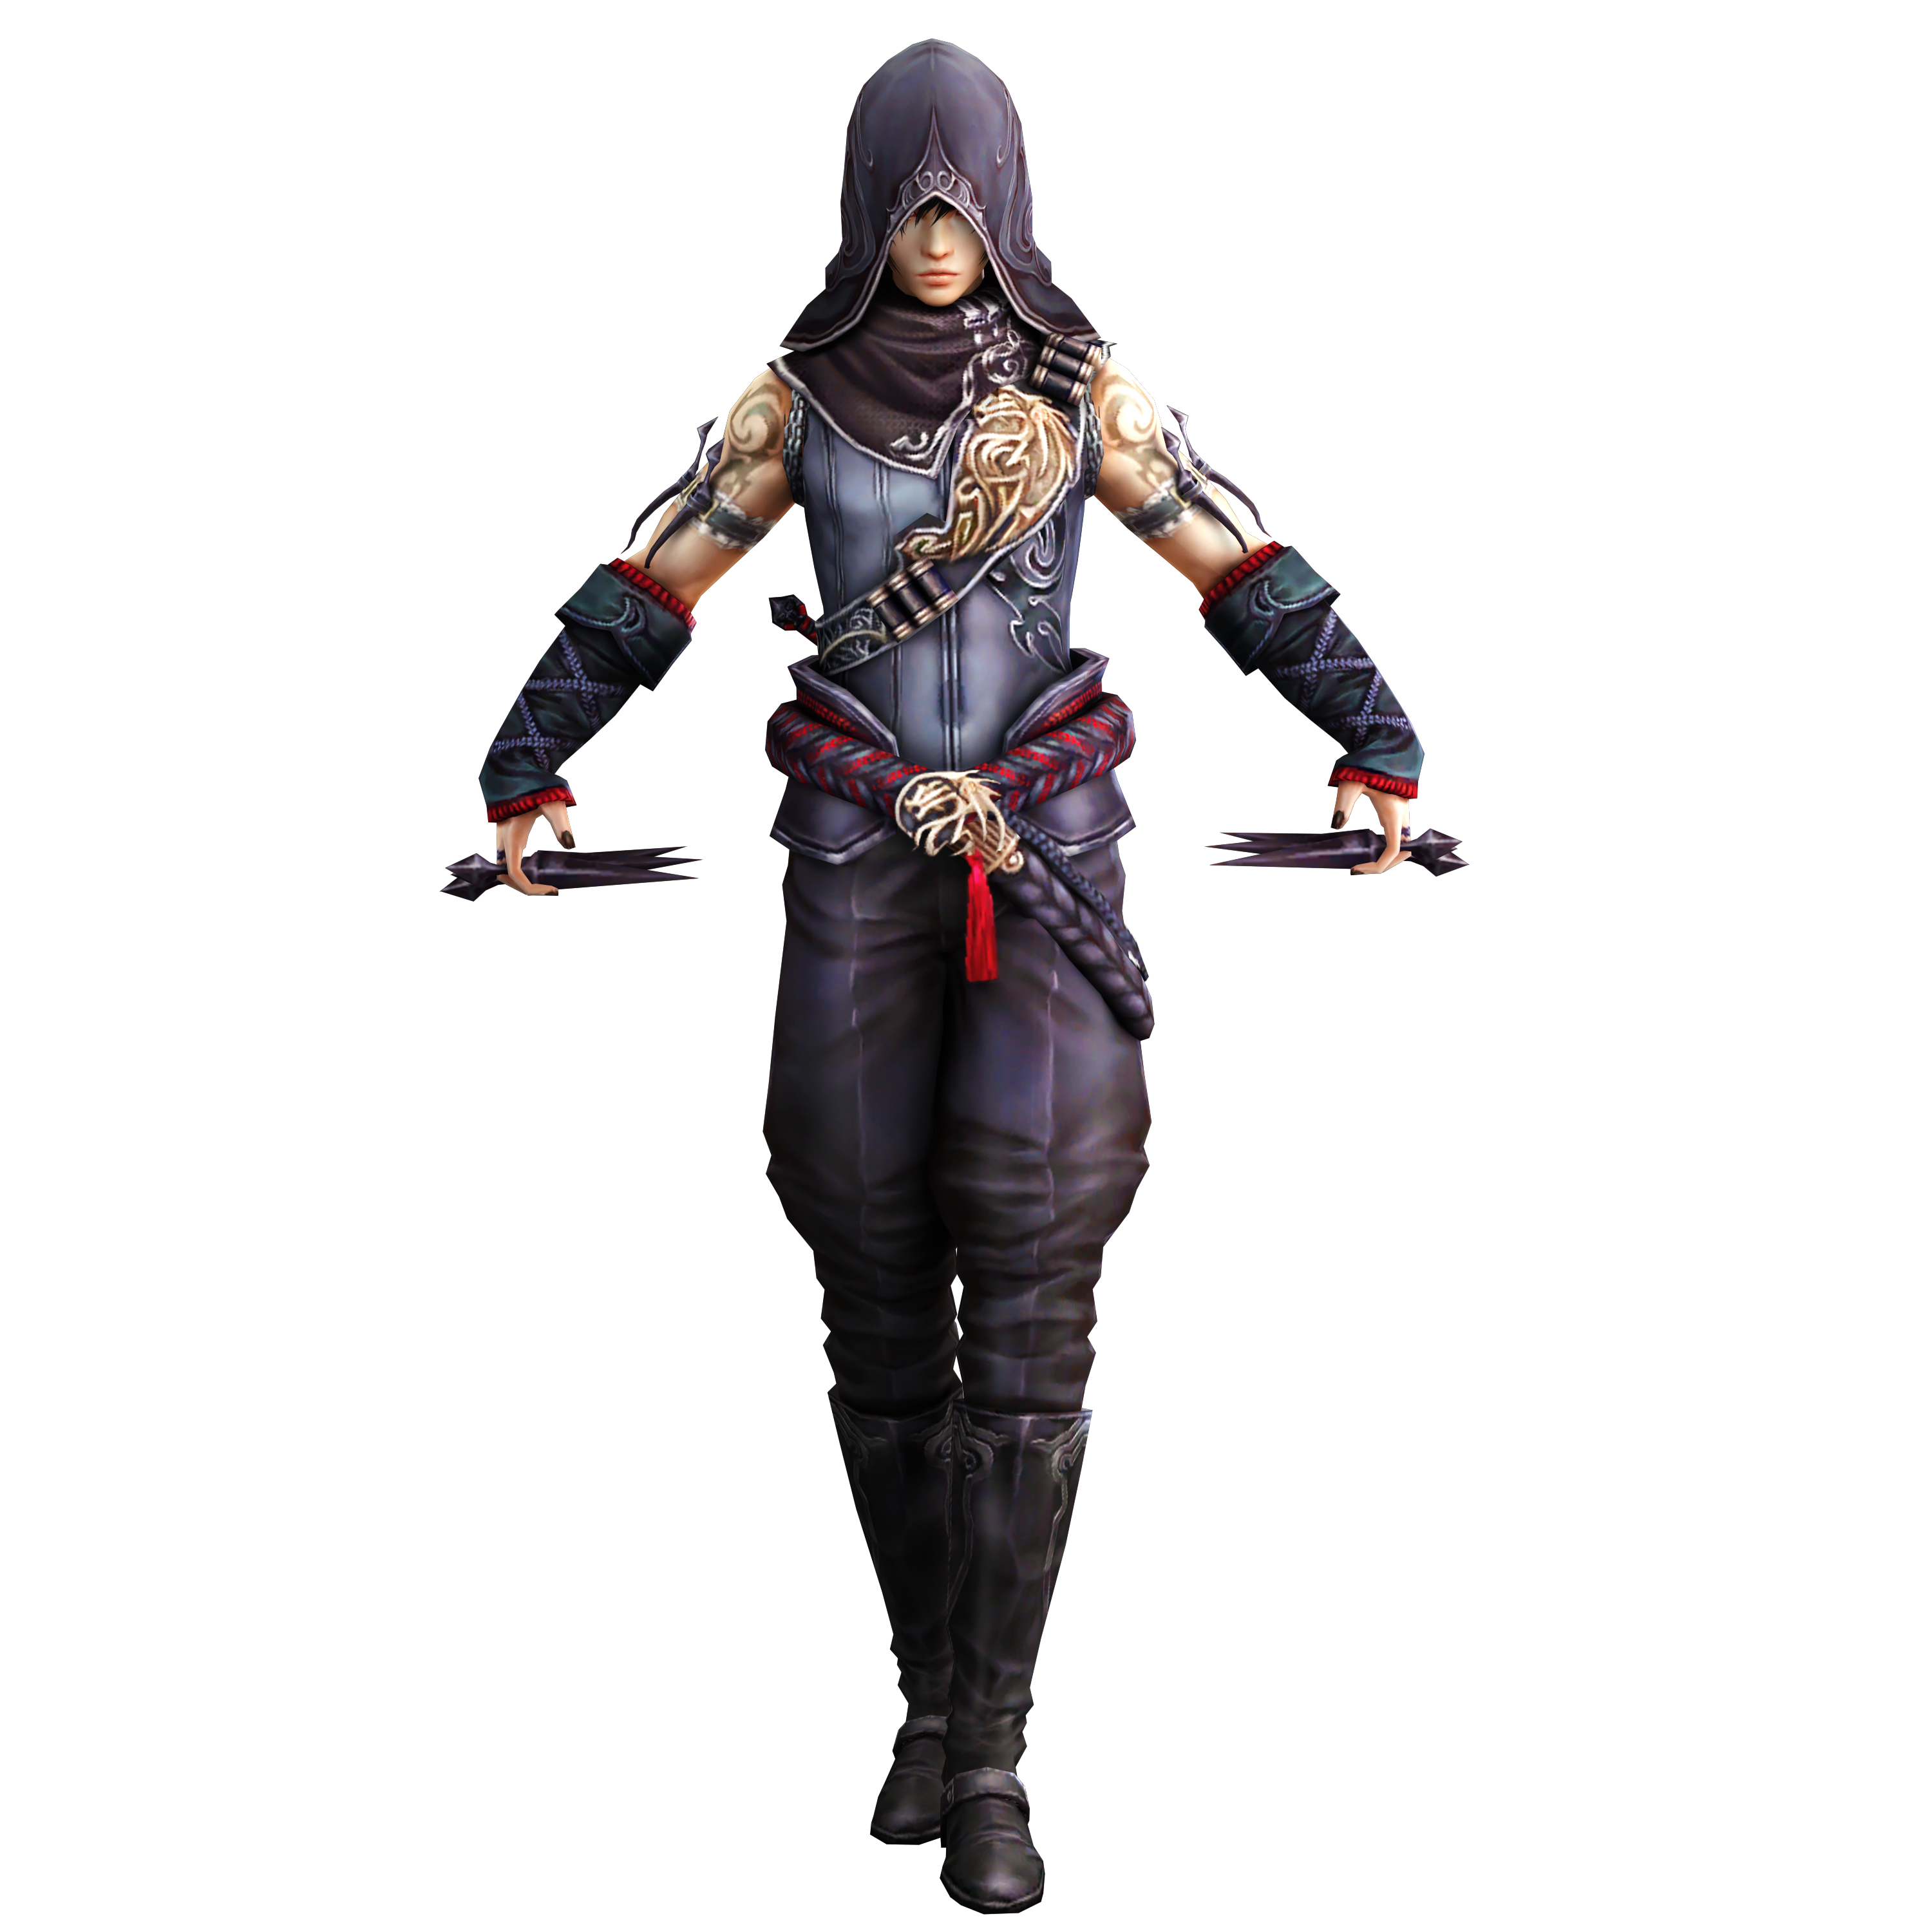 Anime Male Hooded Assassin How To Draw An Pictures